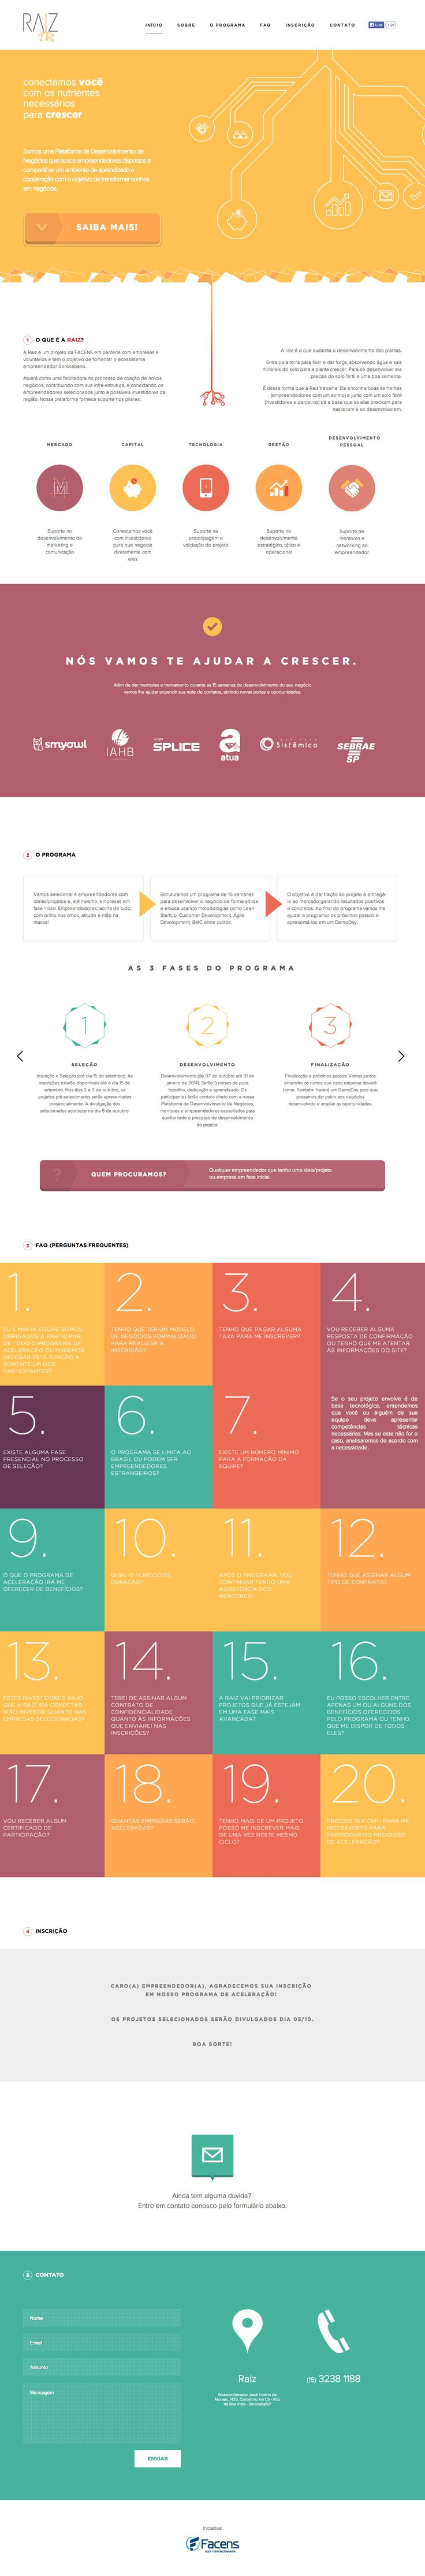 Some neat load transitions and a clean flat design in this one pager for a Brazilian startup accelerator program called 'Raiz'.